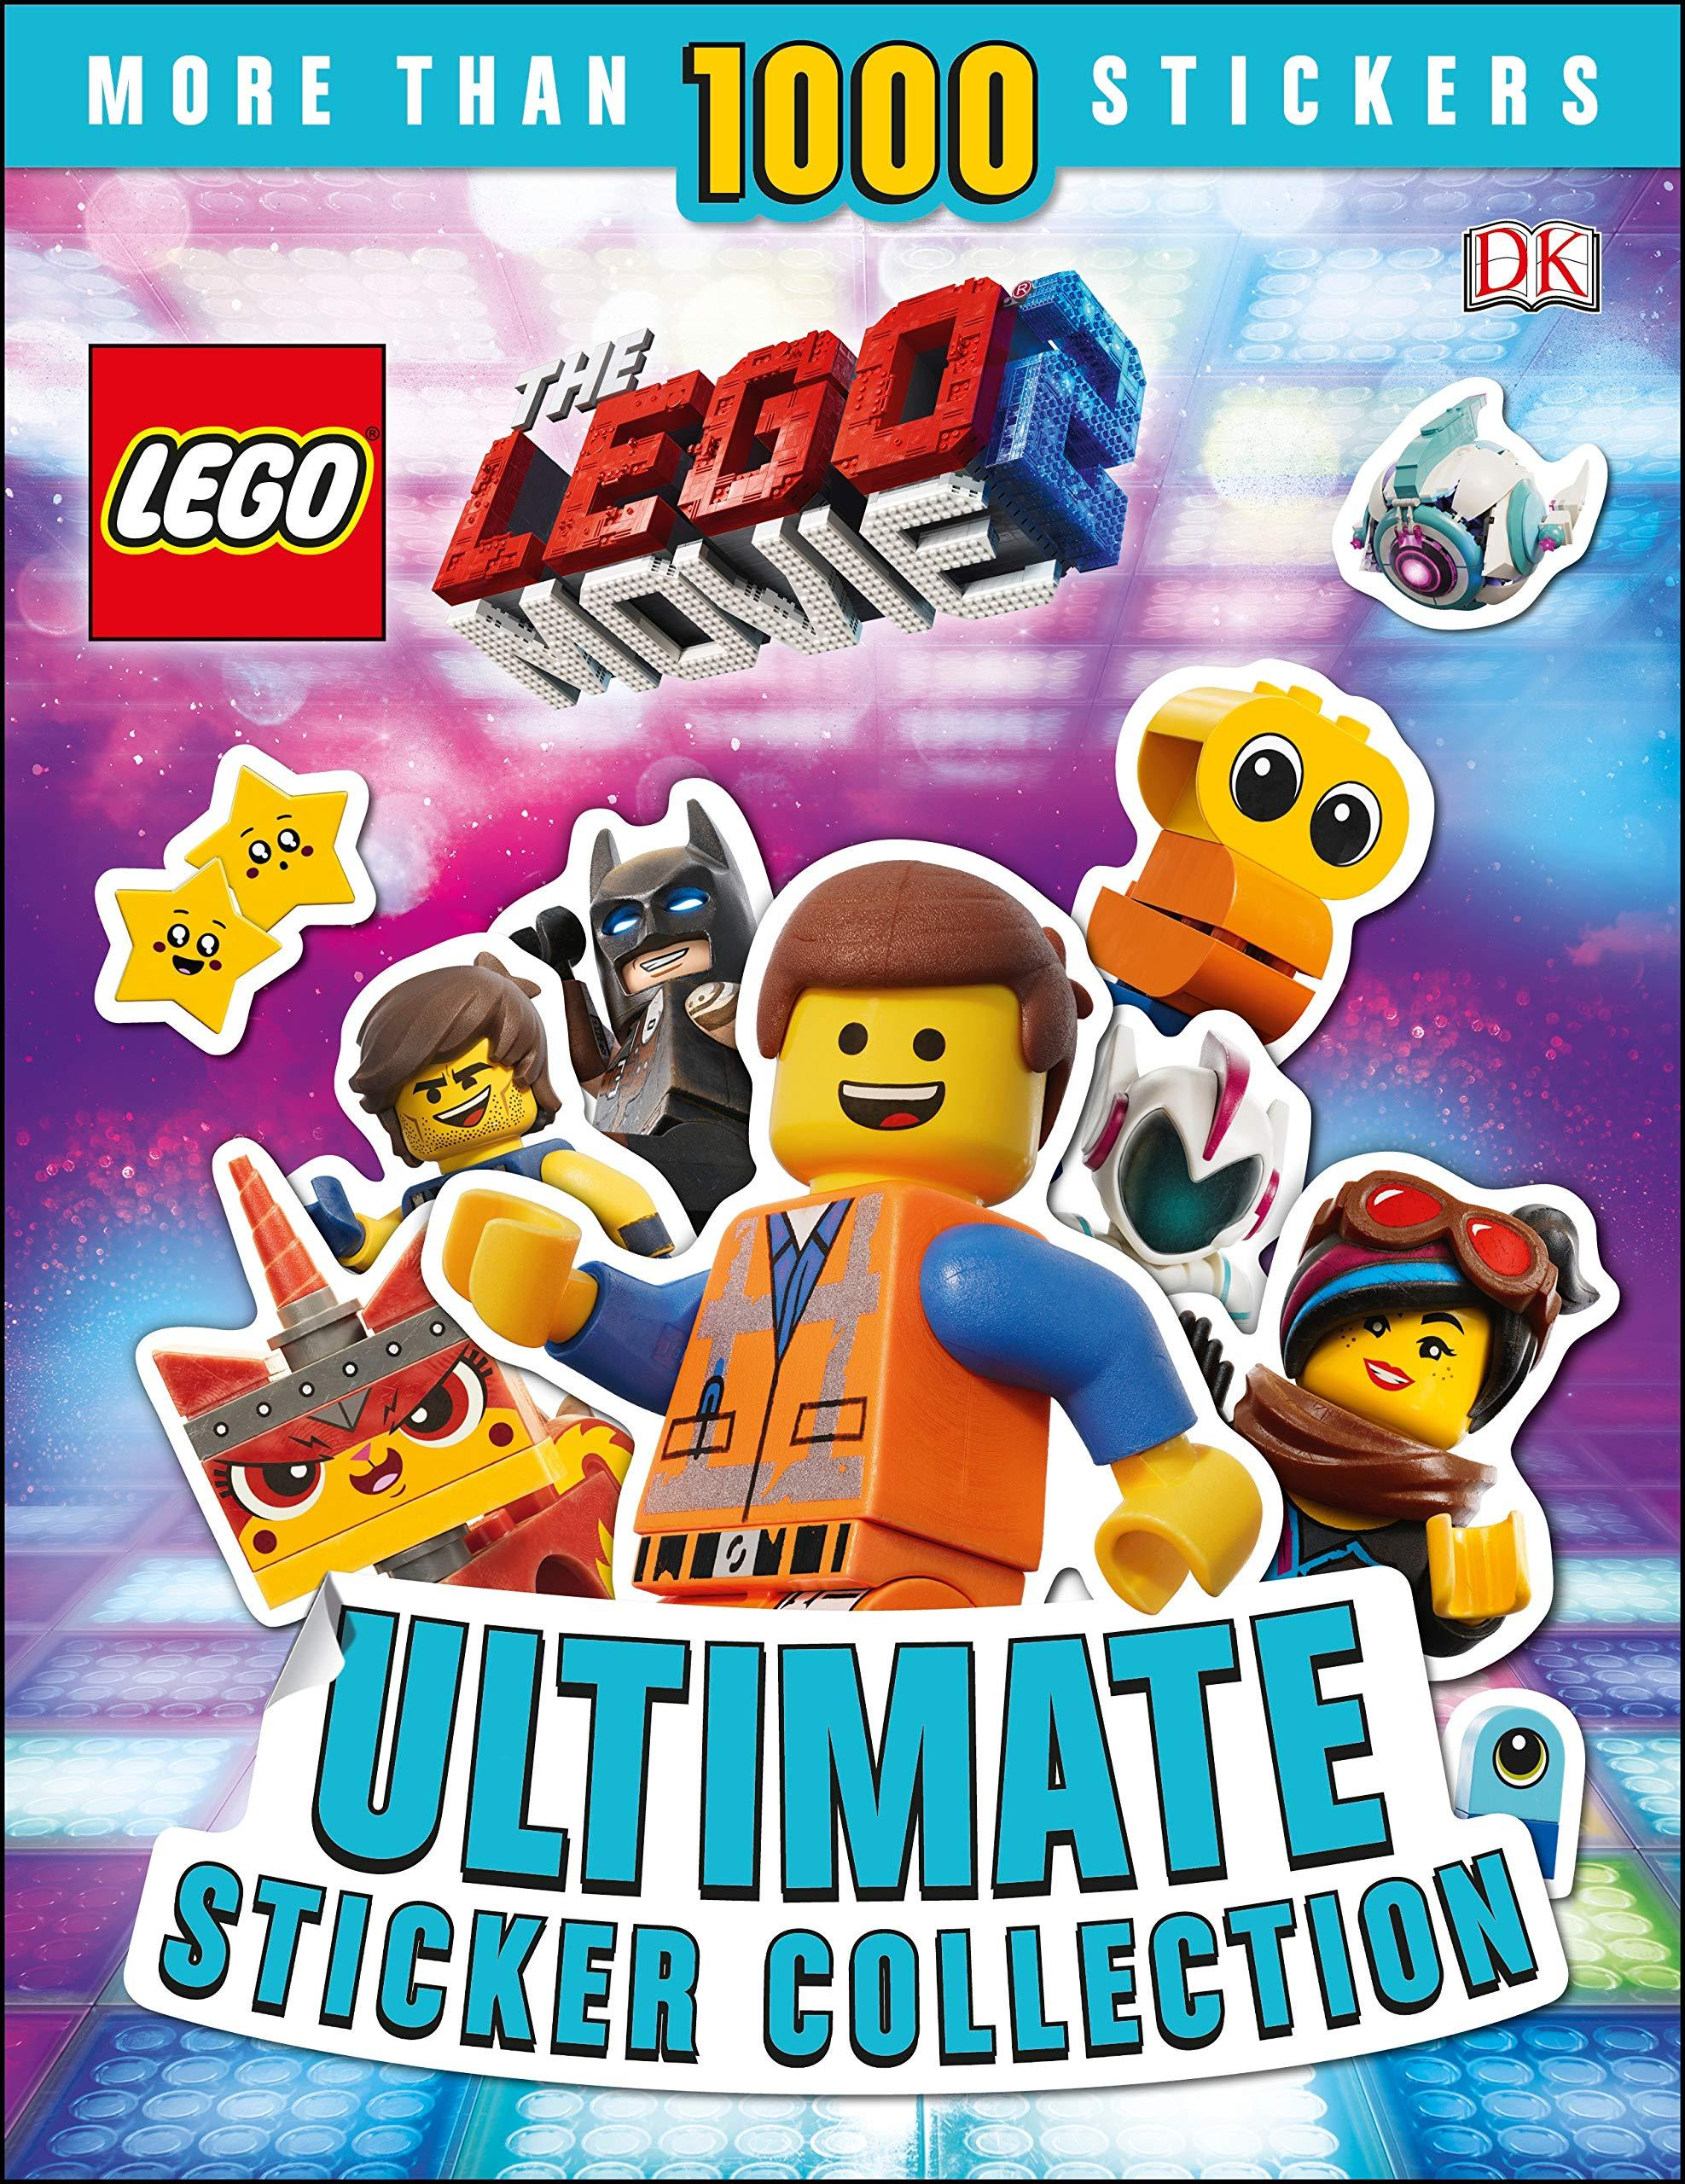 The LEGO Movie 2 Ultimate Sticker Collection